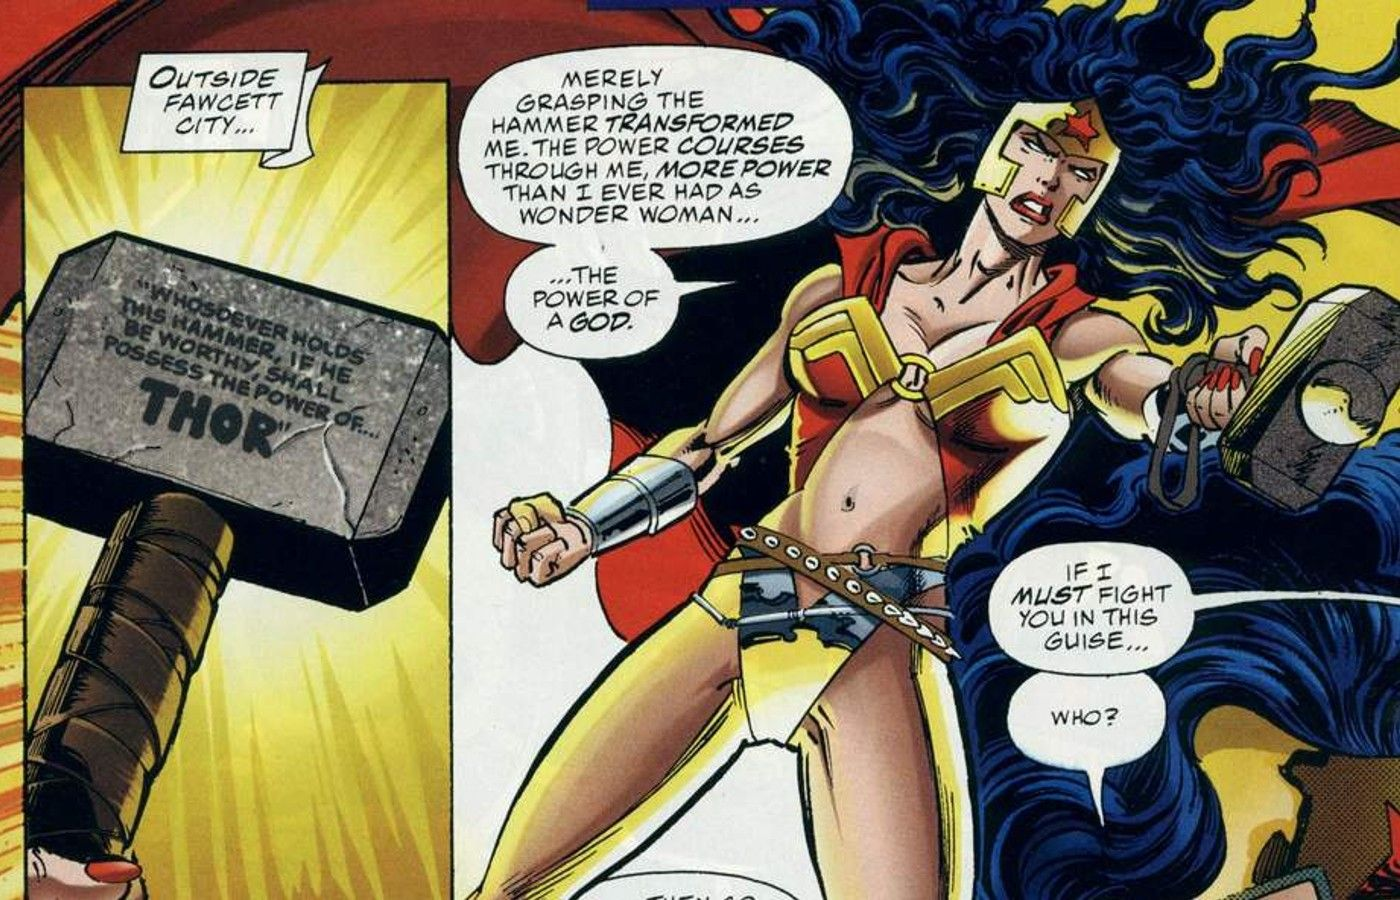 Wonder Woman's most powerful form comes from Marvel's Mjolnir